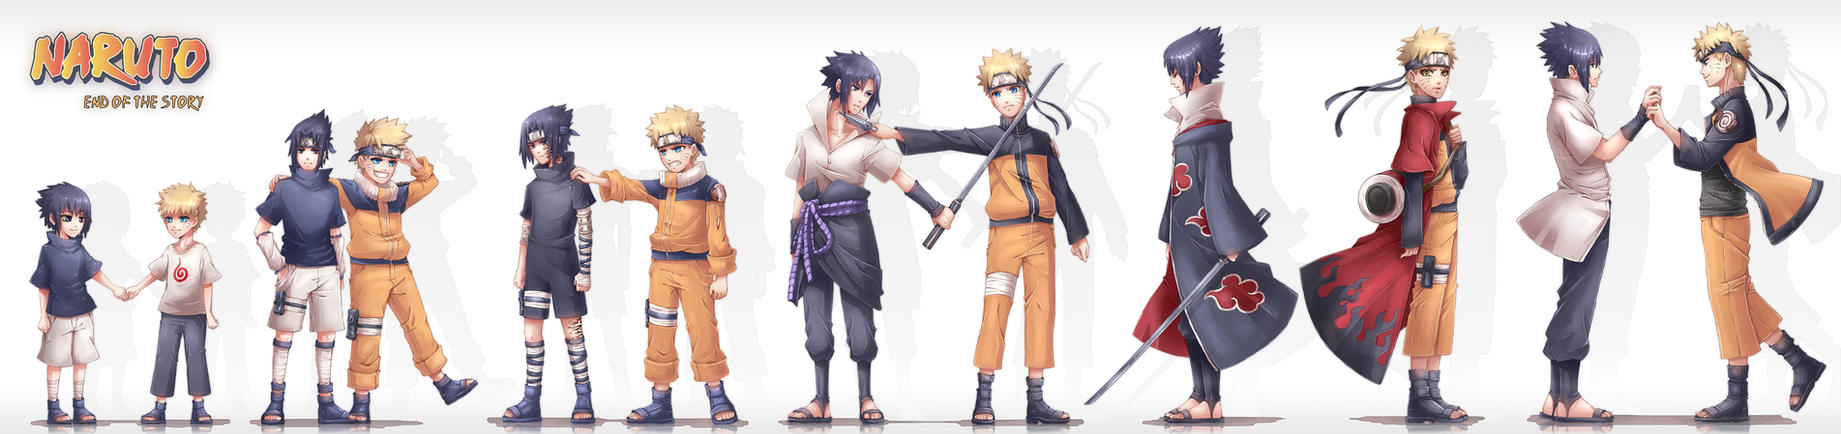 Naruto End of the Story by Lenalee-sama